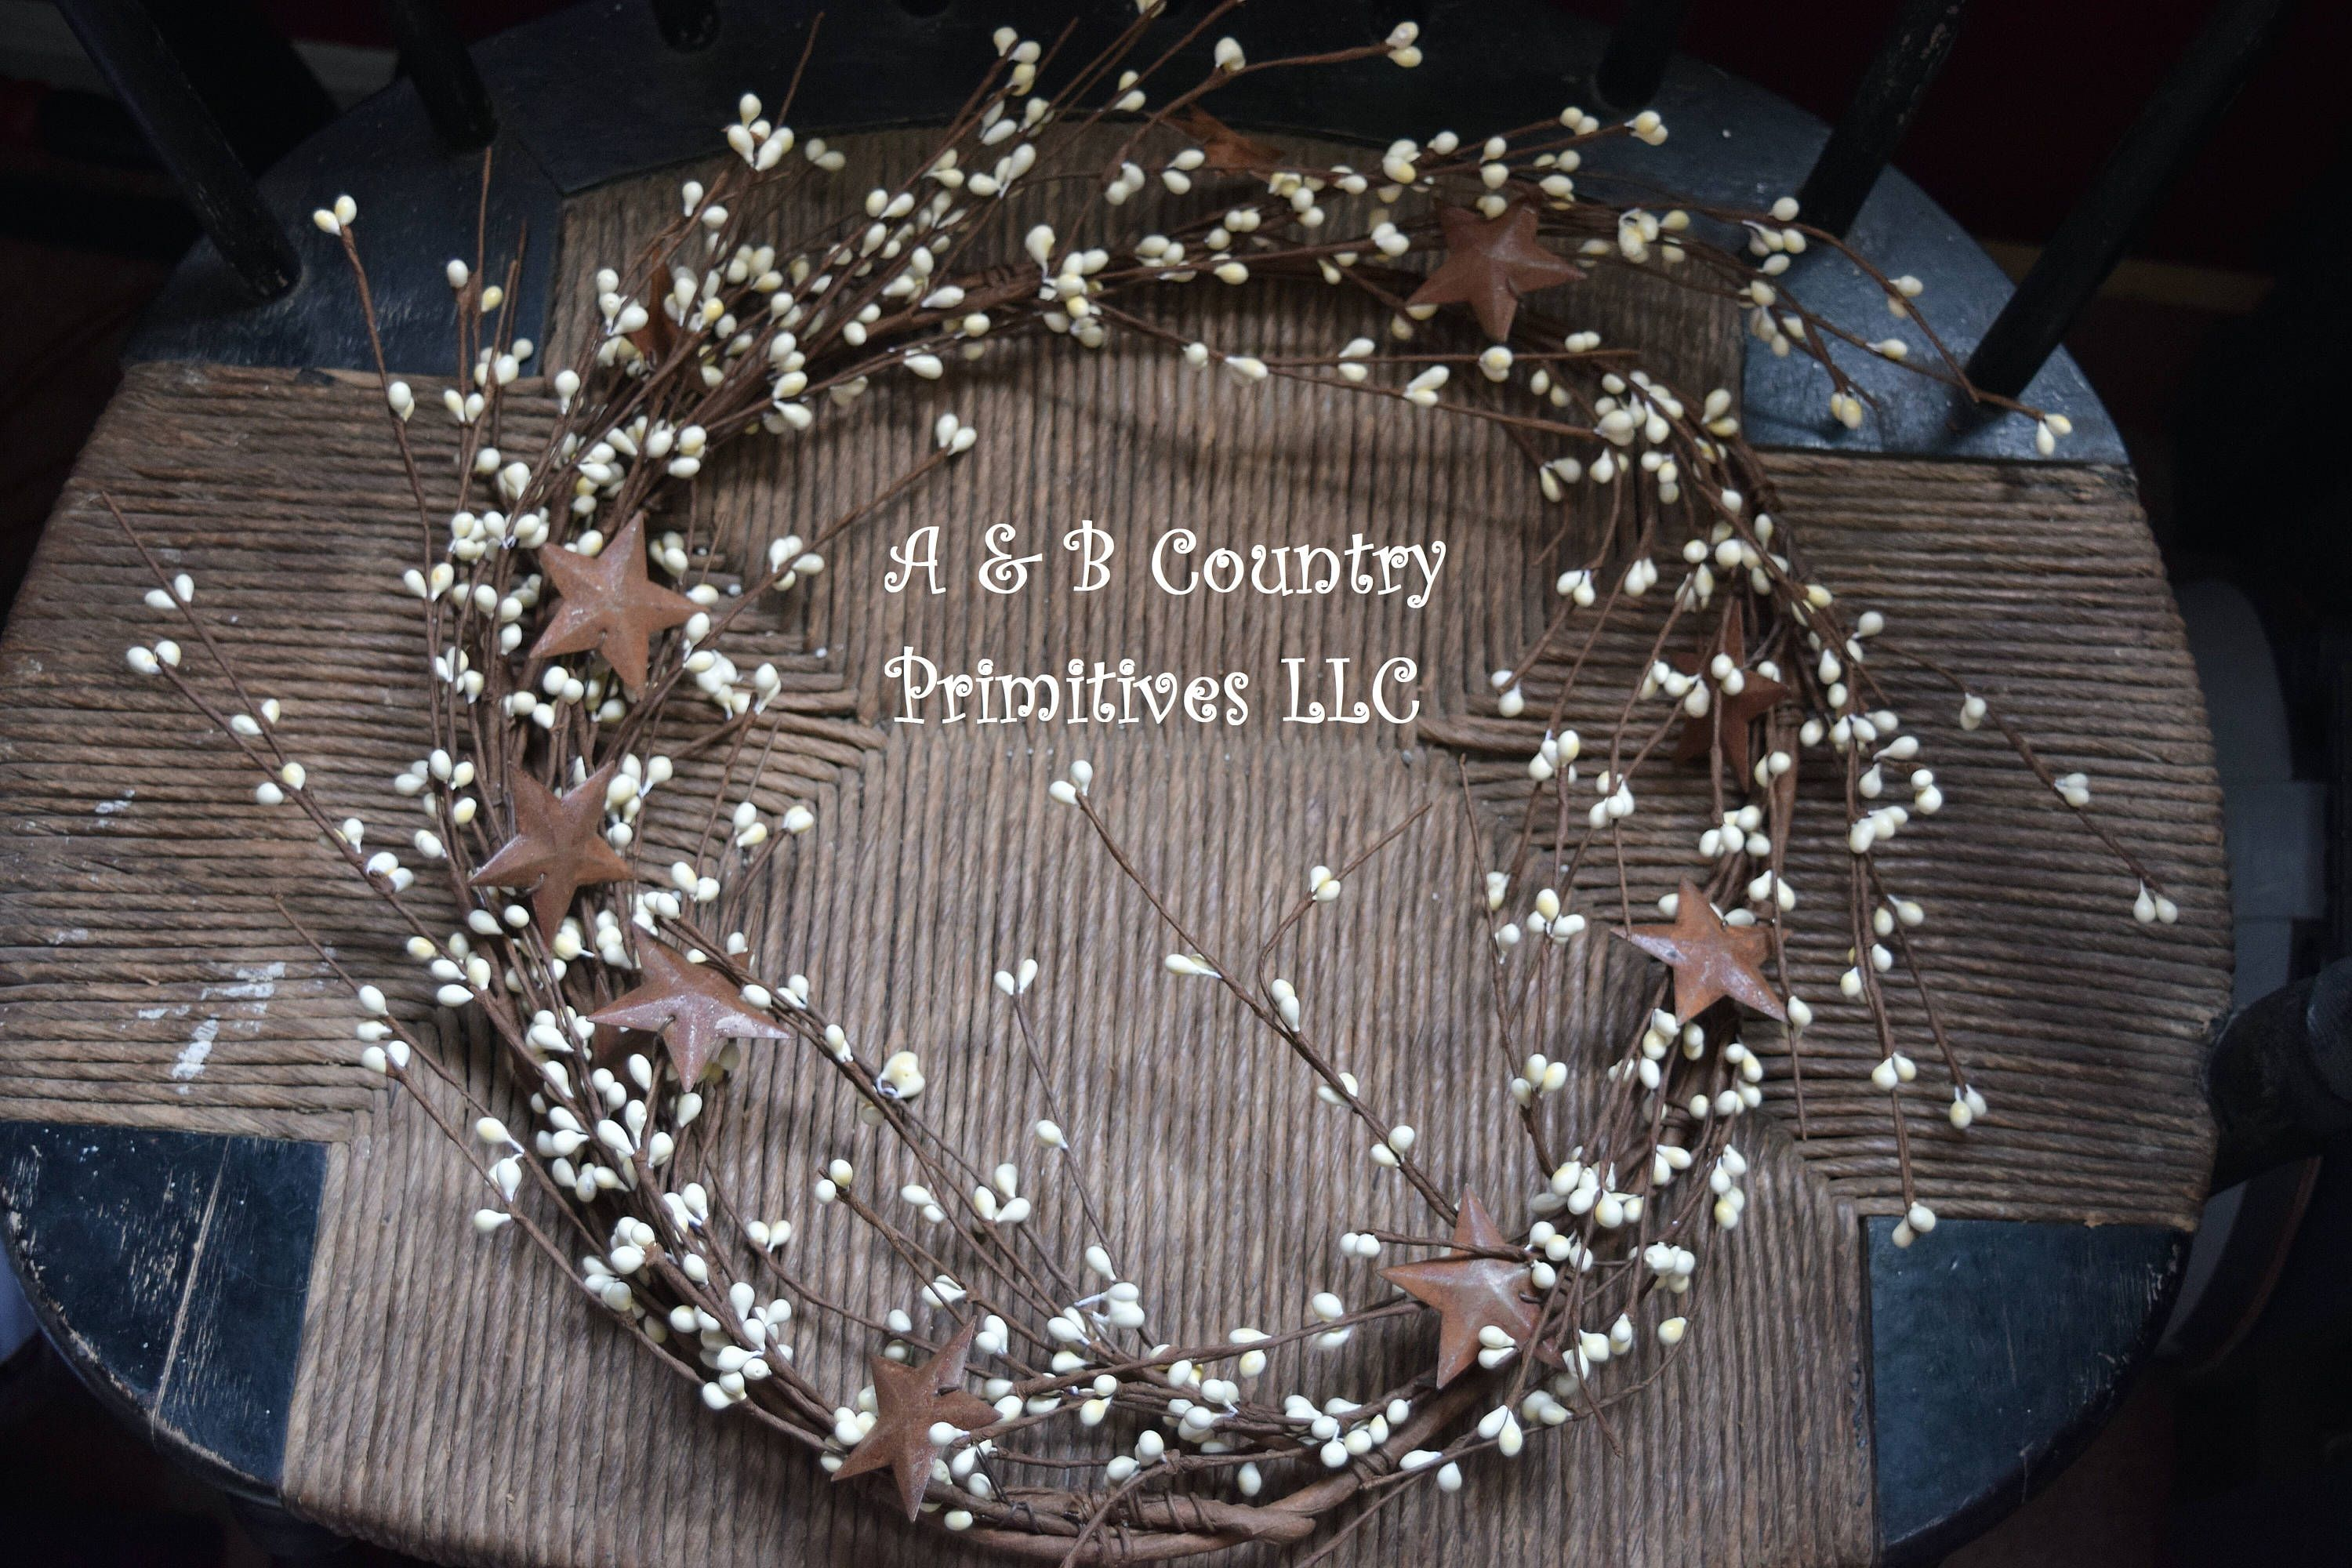 amazing Berry Garland With Stars Part - 9: Cream Berry Garland with Rusty Stars 5ft, Country Wreath Supplies, Country  Home Decor, Berry Garland with Stars, by ABCountryPrimitives on Etsy